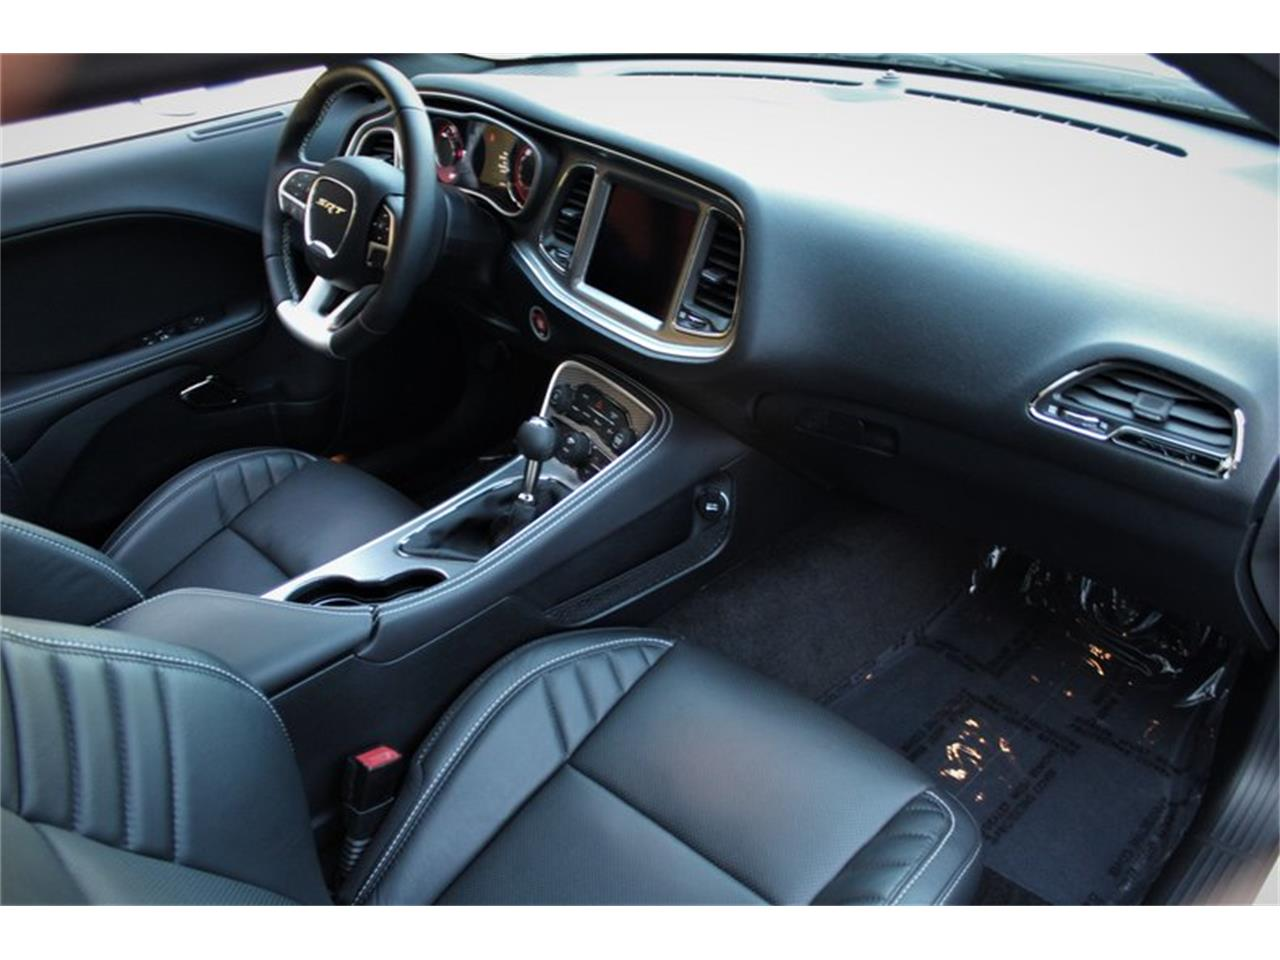 2017 Dodge Challenger (CC-1412854) for sale in Clifton Park, New York